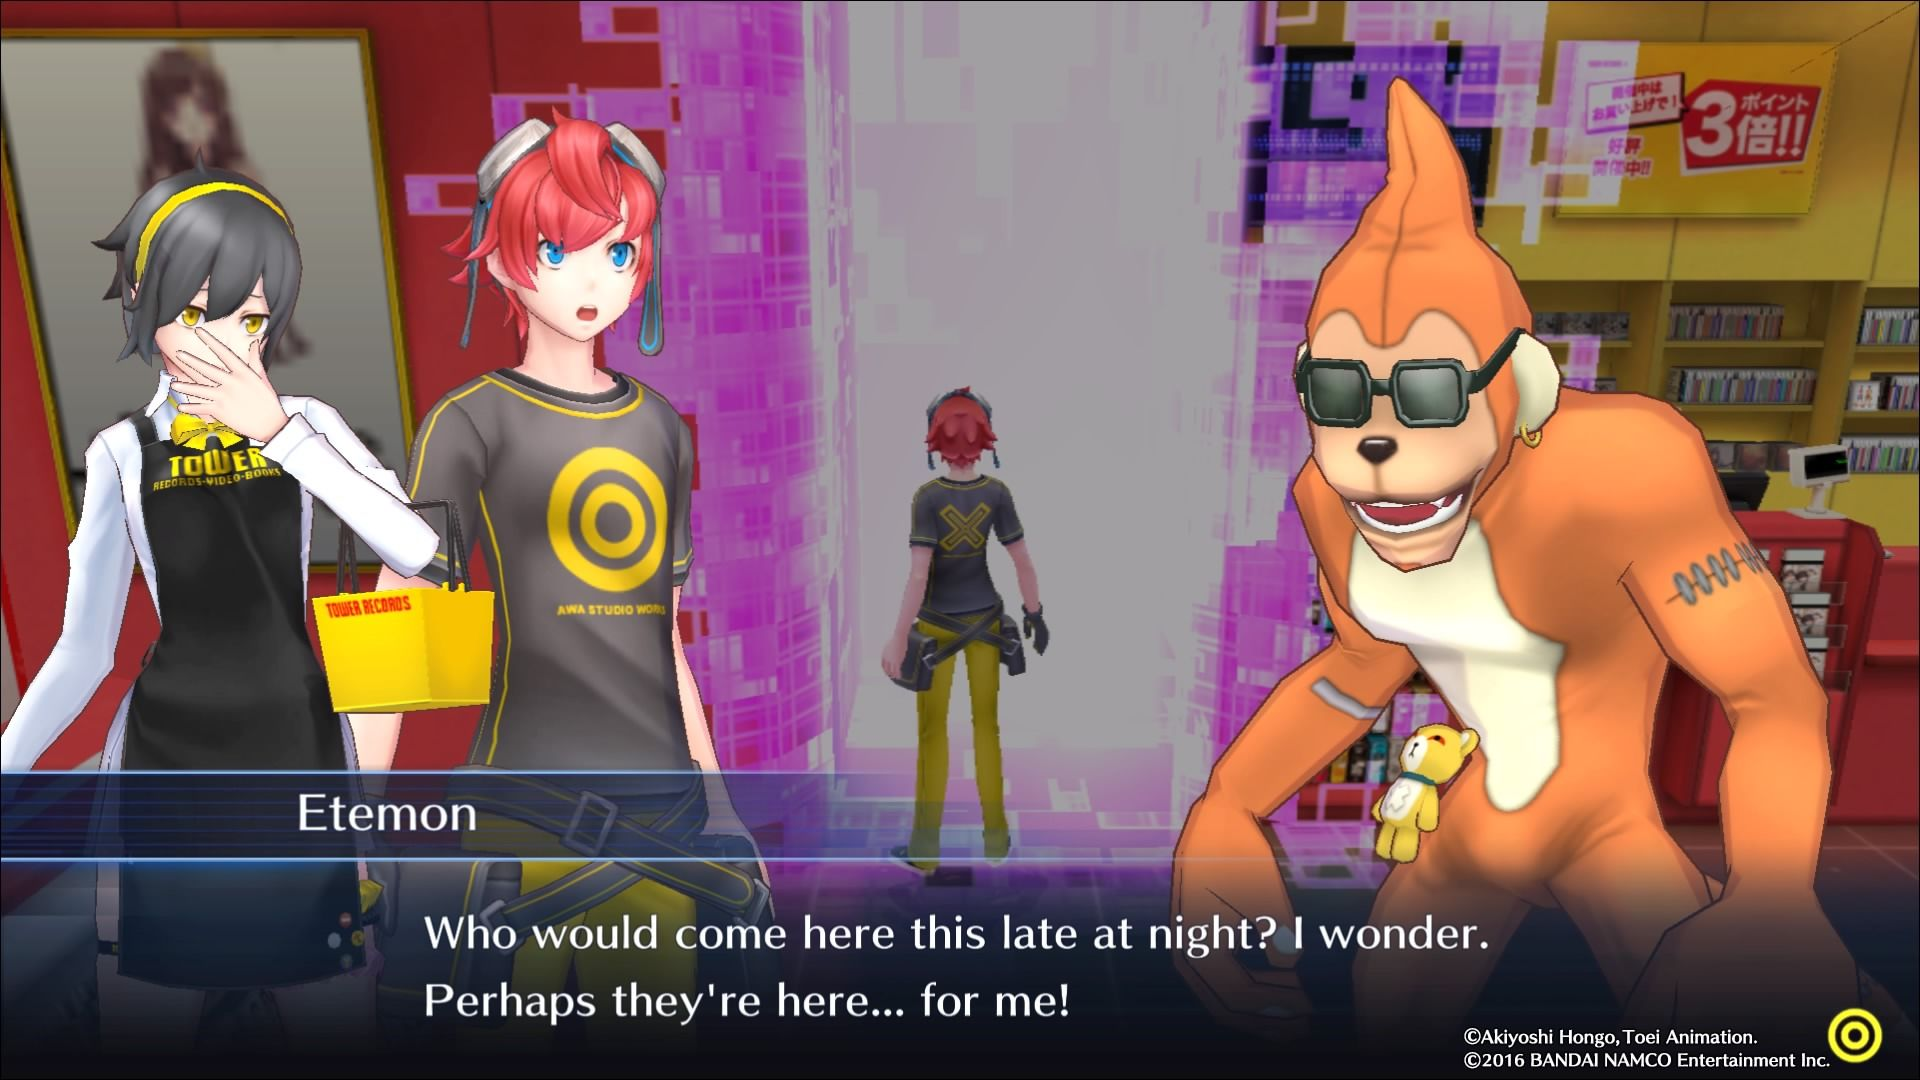 Digimon Story Cyber Sleuth DLC Brings Free Missions For PS4 And PS Vita - http://www.thebitbag.com/digimon-story-cyber-sleuth-dlc-brings-free-missions-for-ps4-and-ps-vita/135011